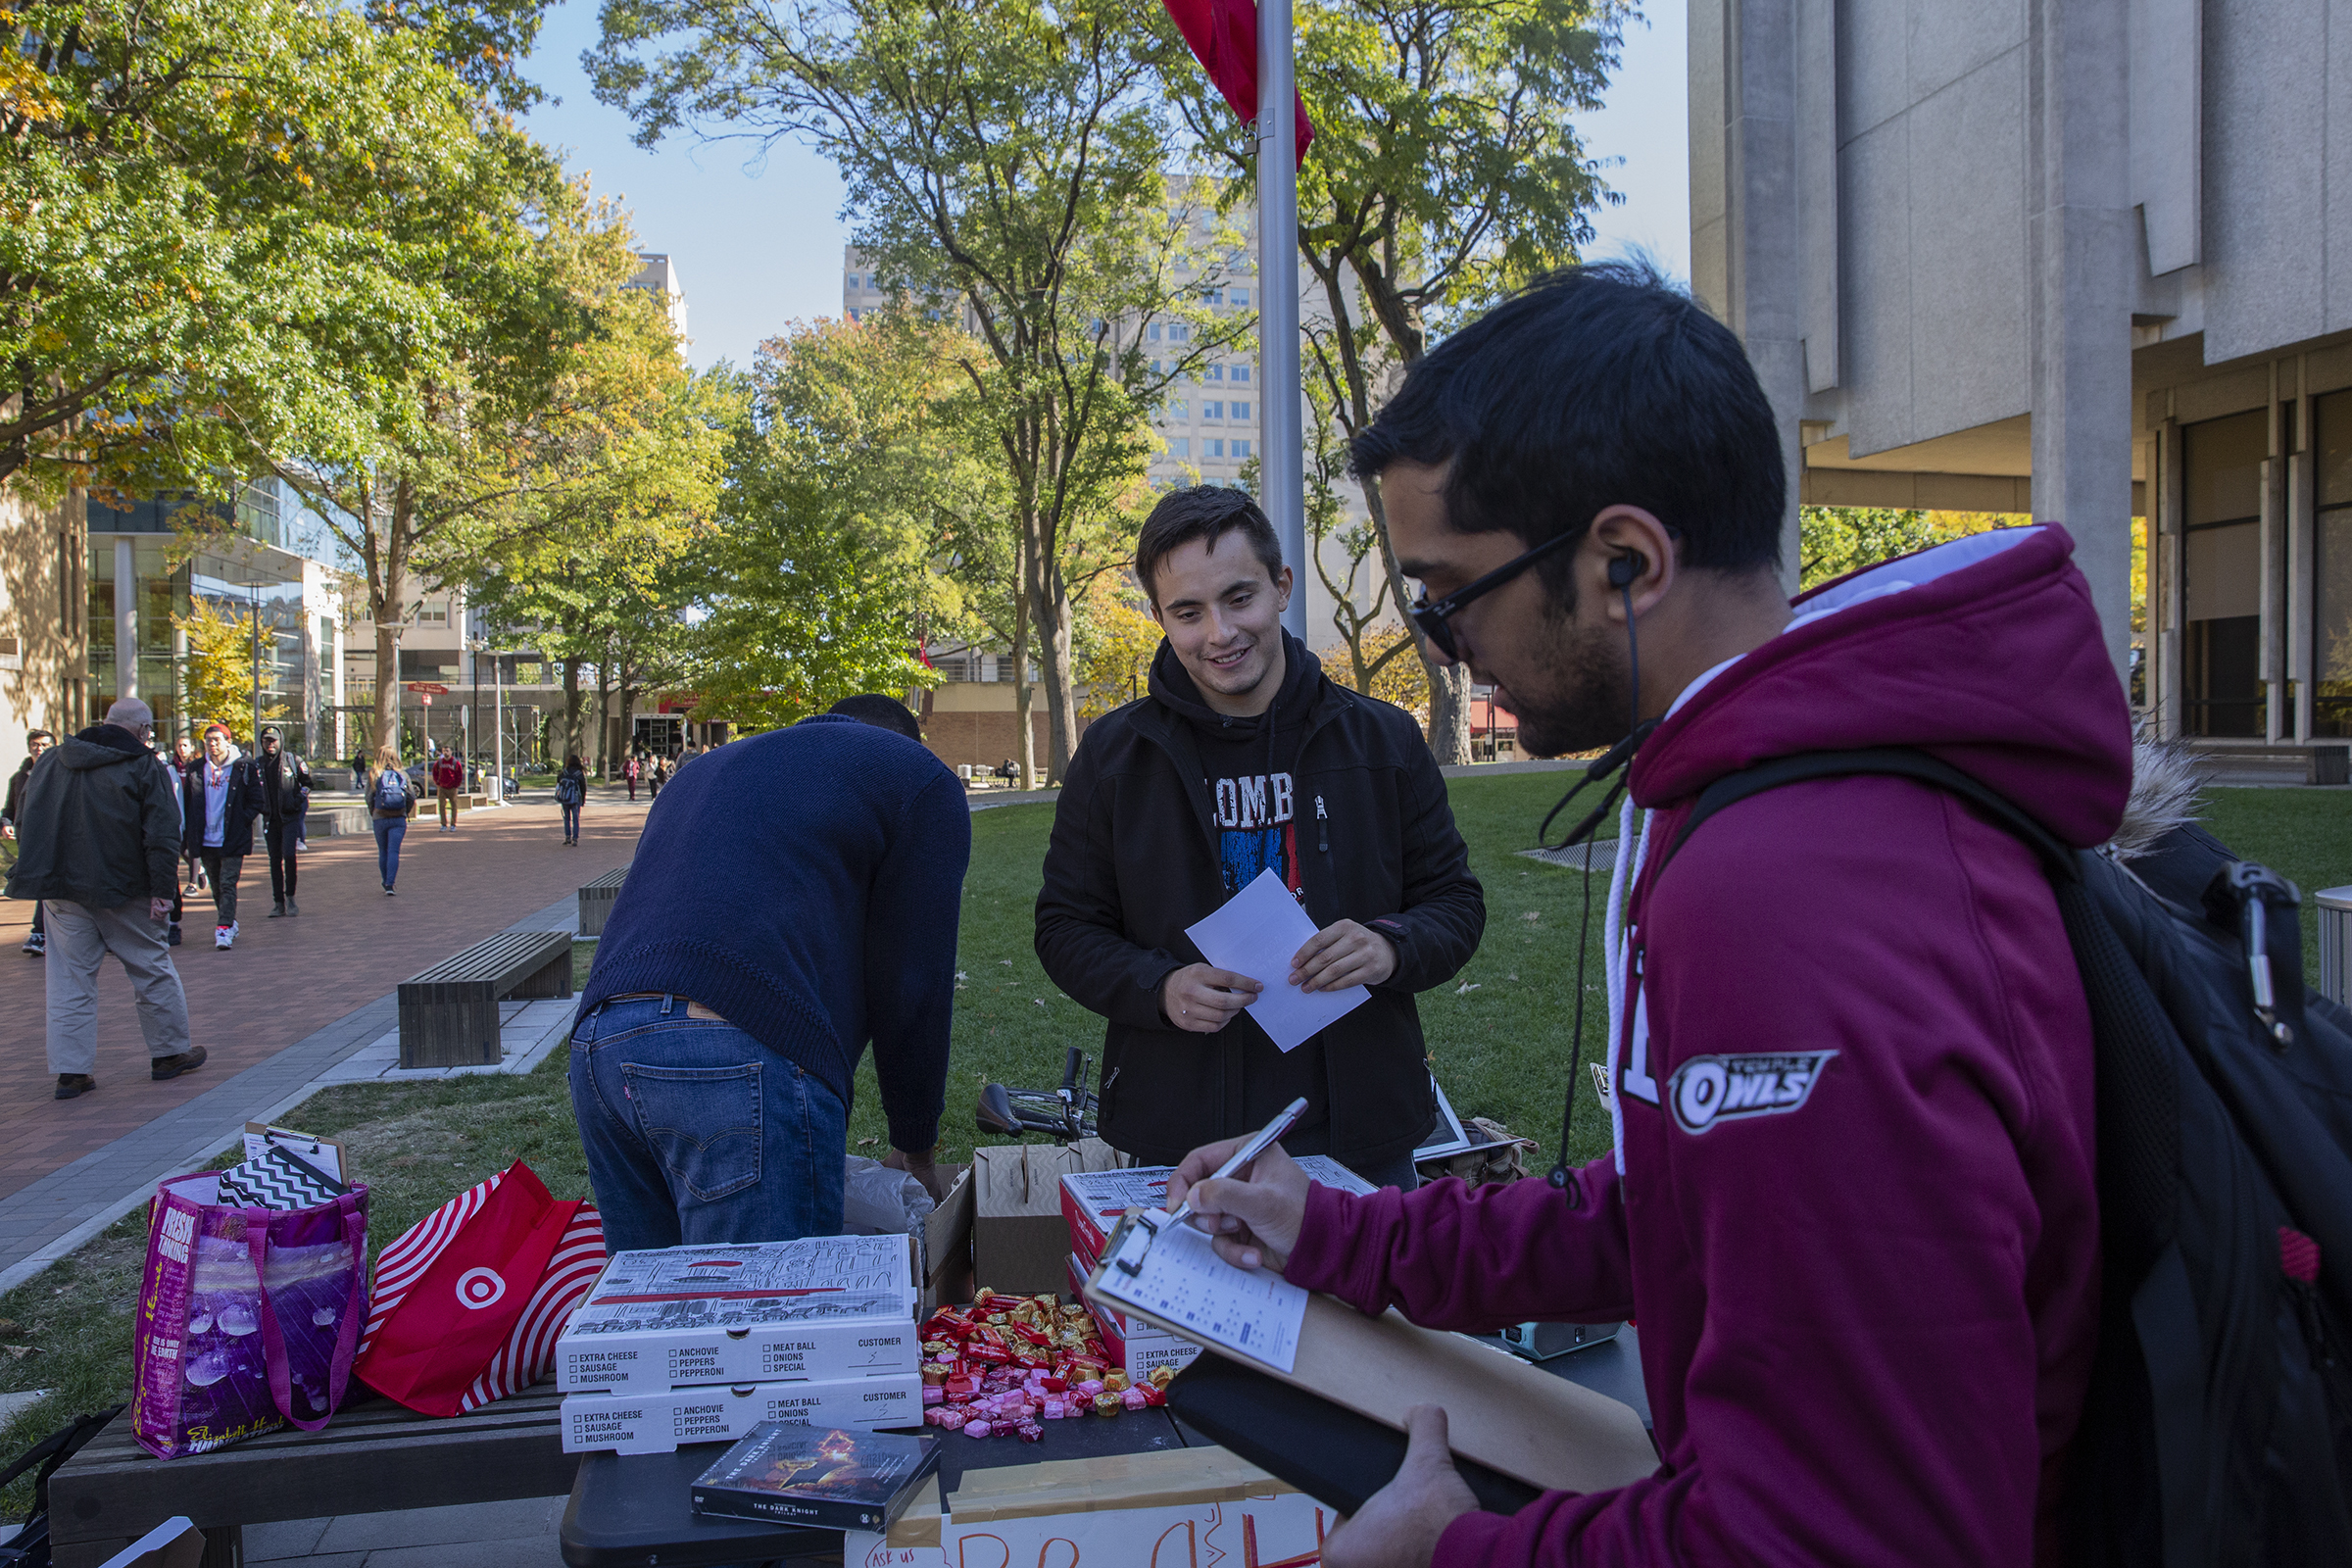 Sebastian Avila, center, encourages students to pledge to vote on Election Day next Tuesday at Temple University on Tuesday, Oct. 30, 2018. The goal was to ensure a massive young voter turnout next week.